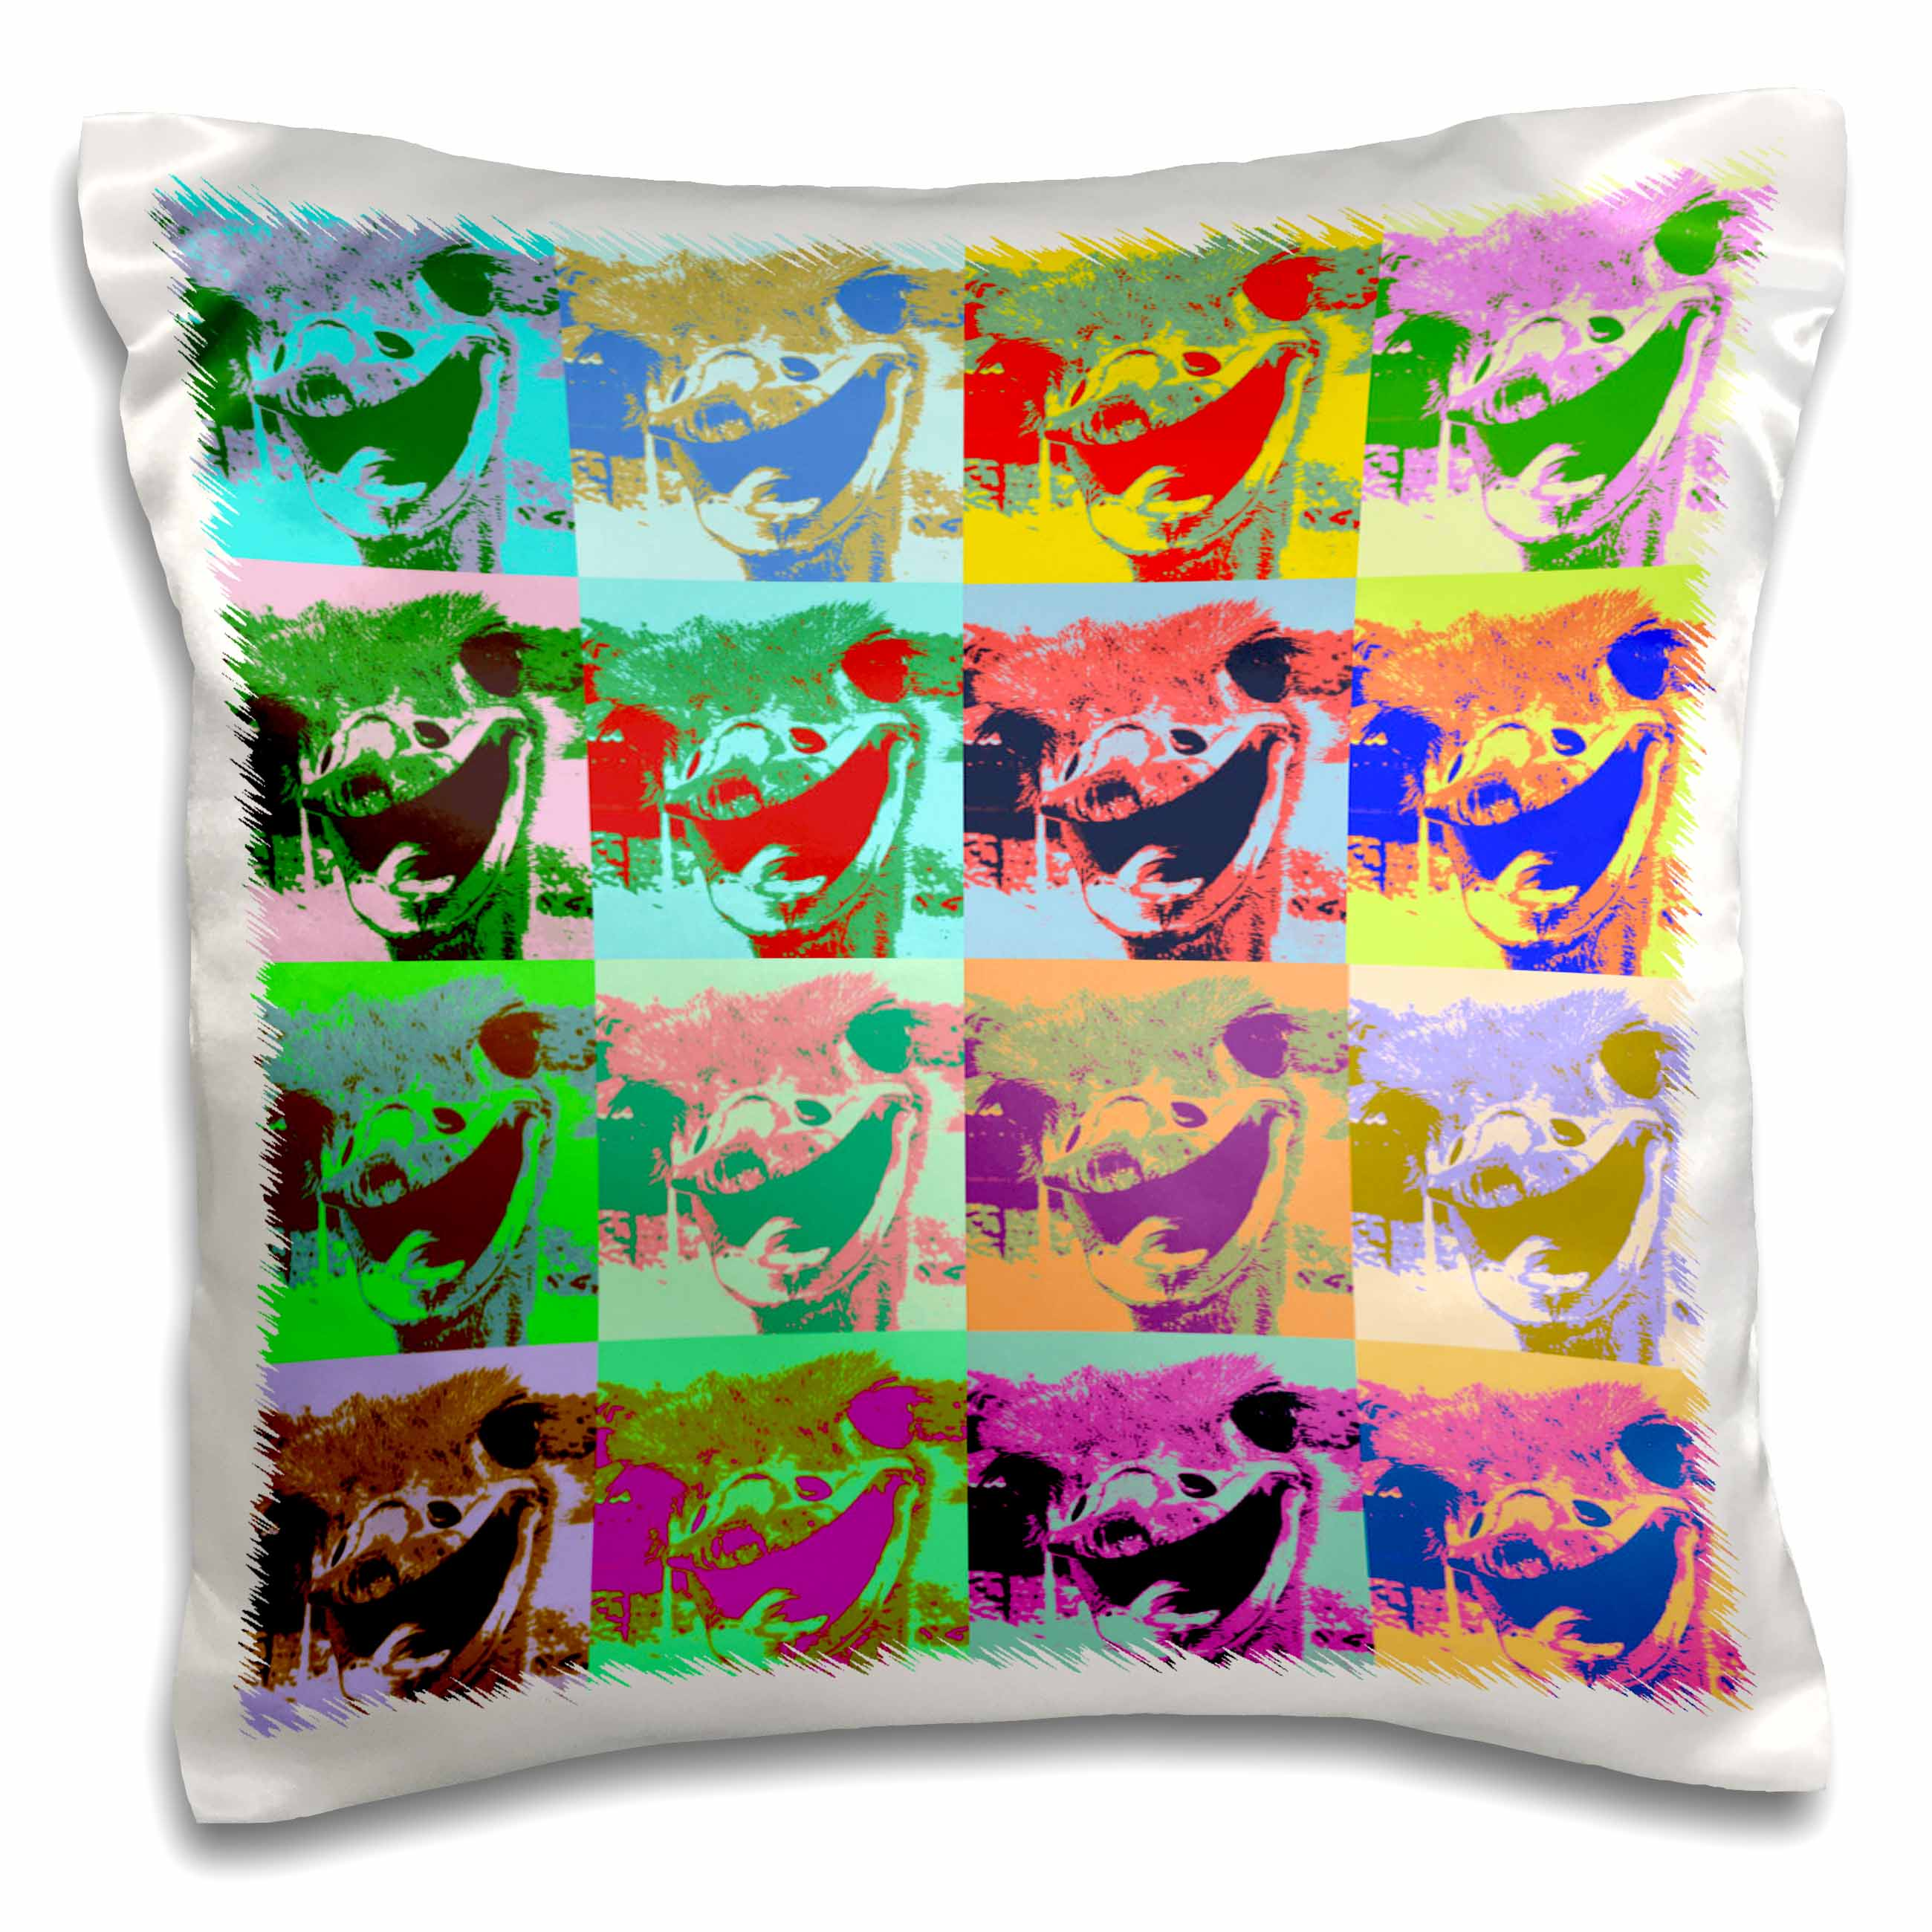 3dRose Ostrich Pop Art, Pillow Case, 16 by 16-inch